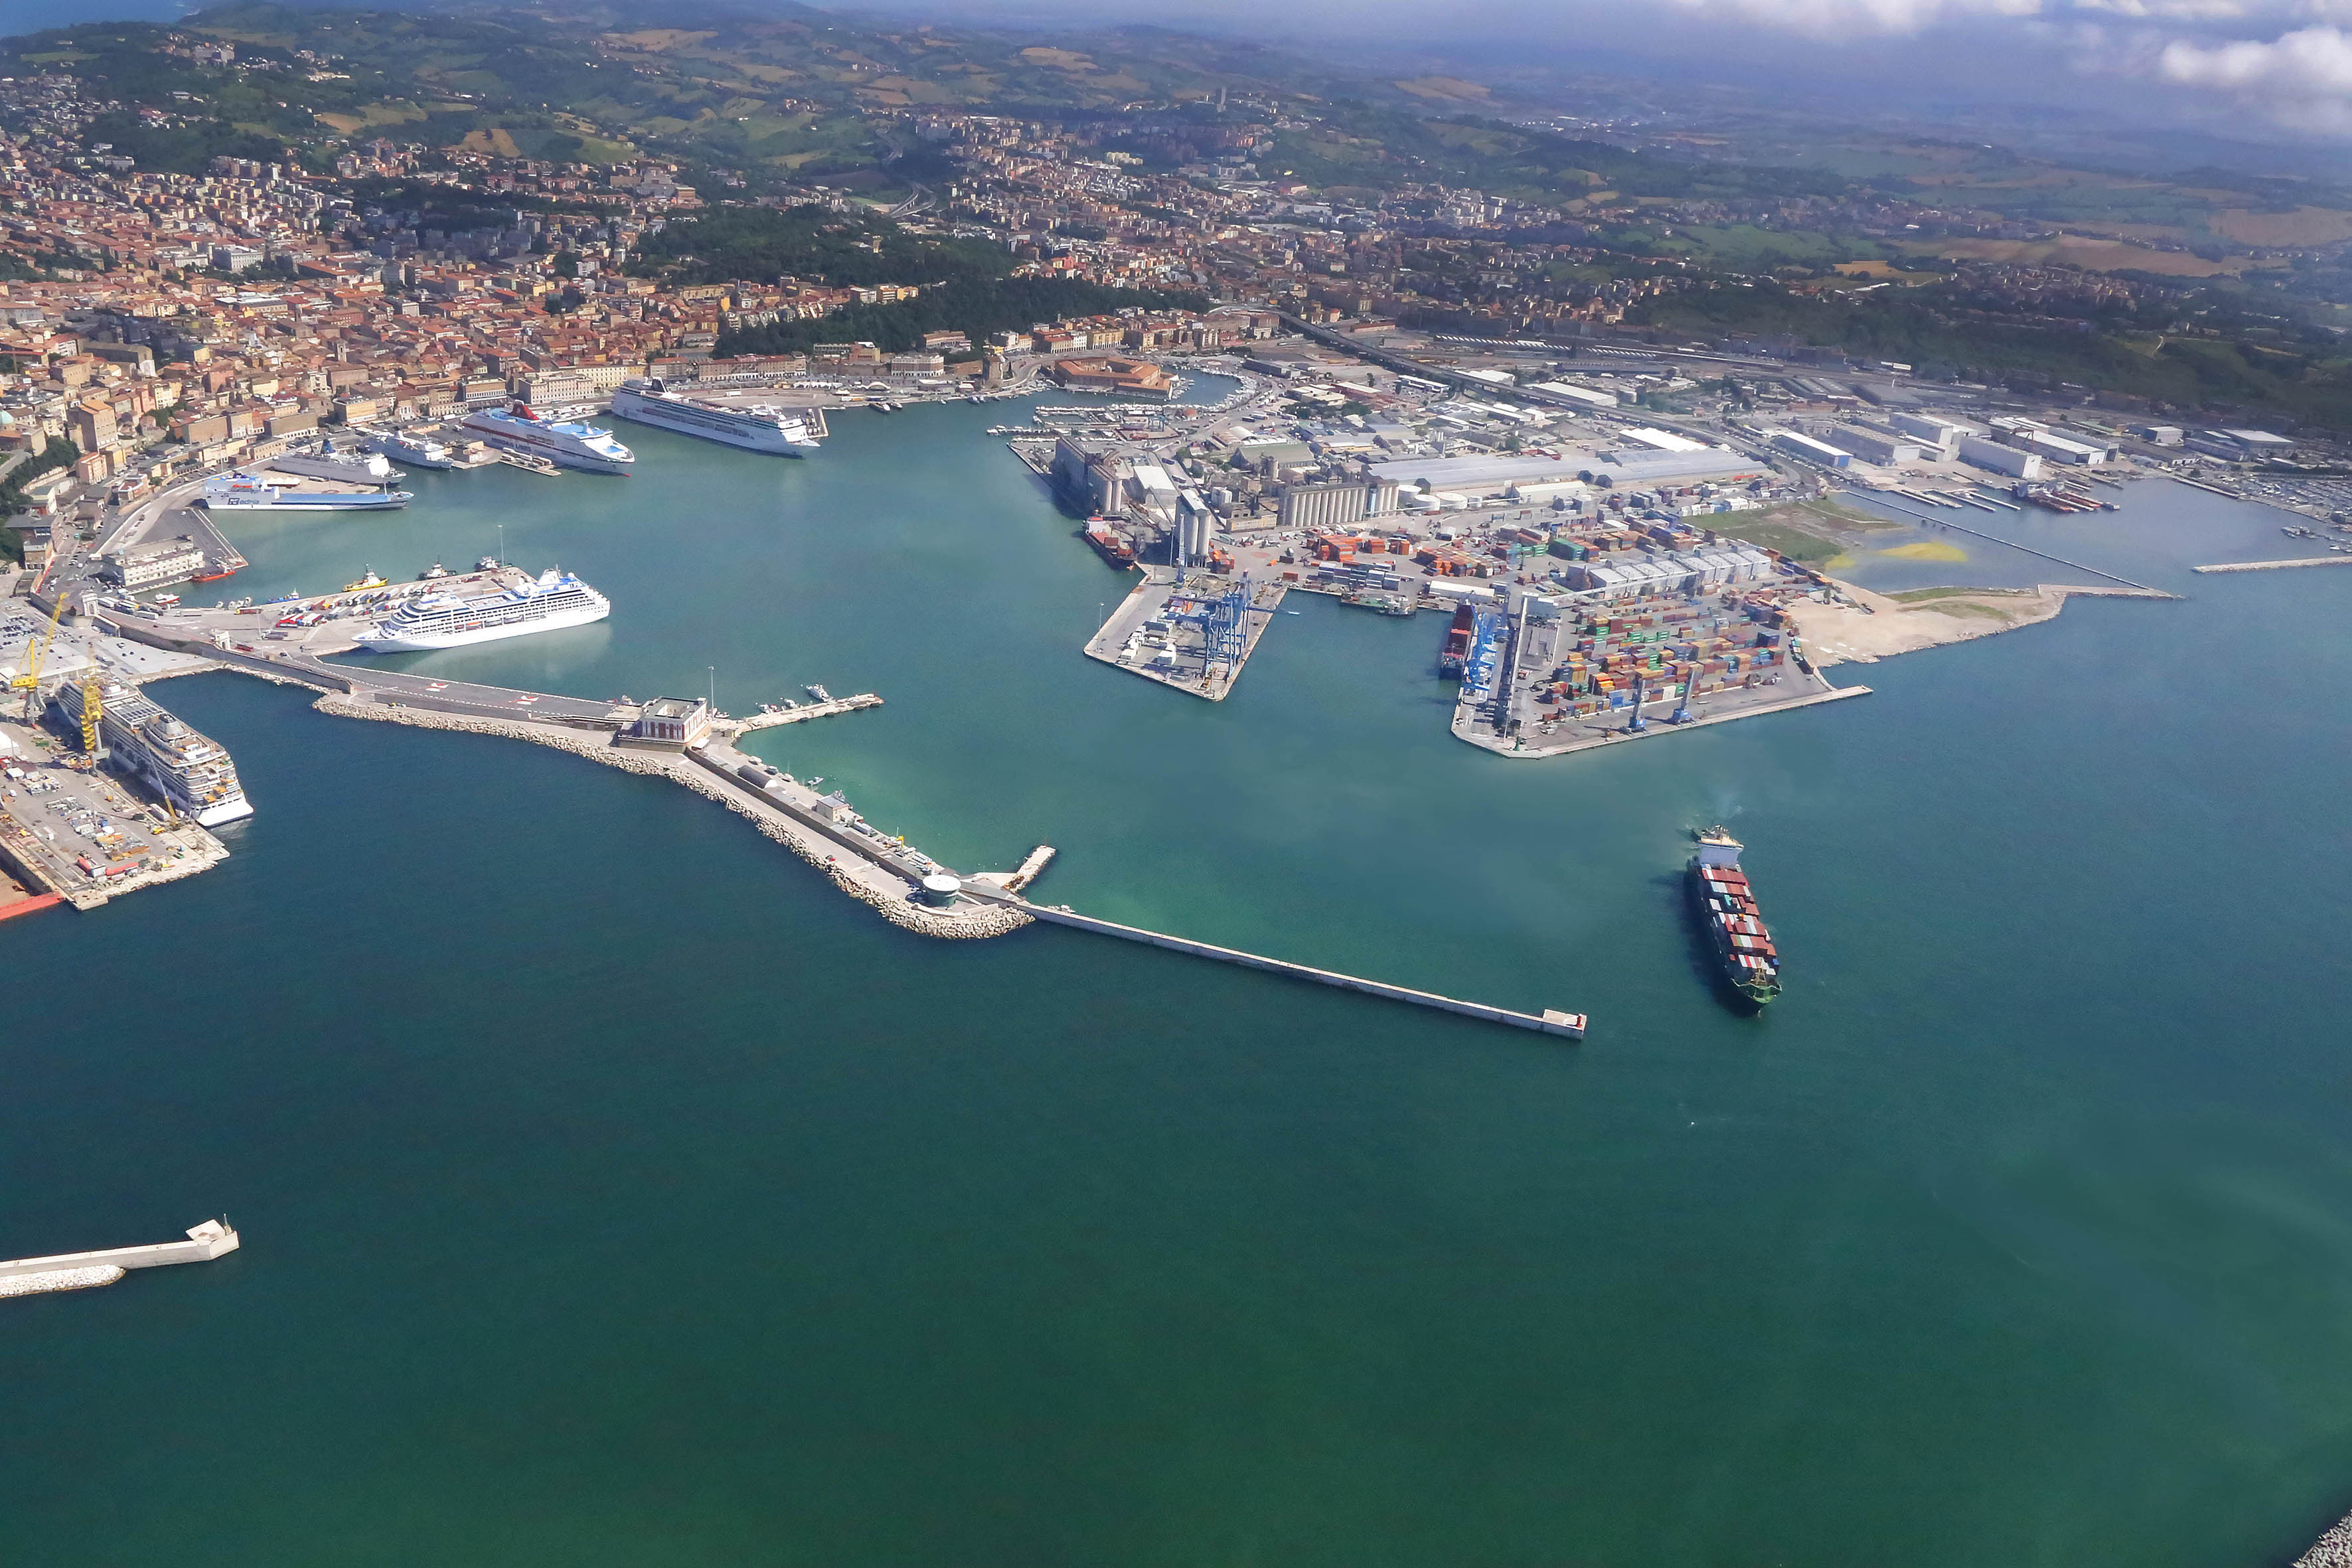 The pilot action of the Port of Ancona